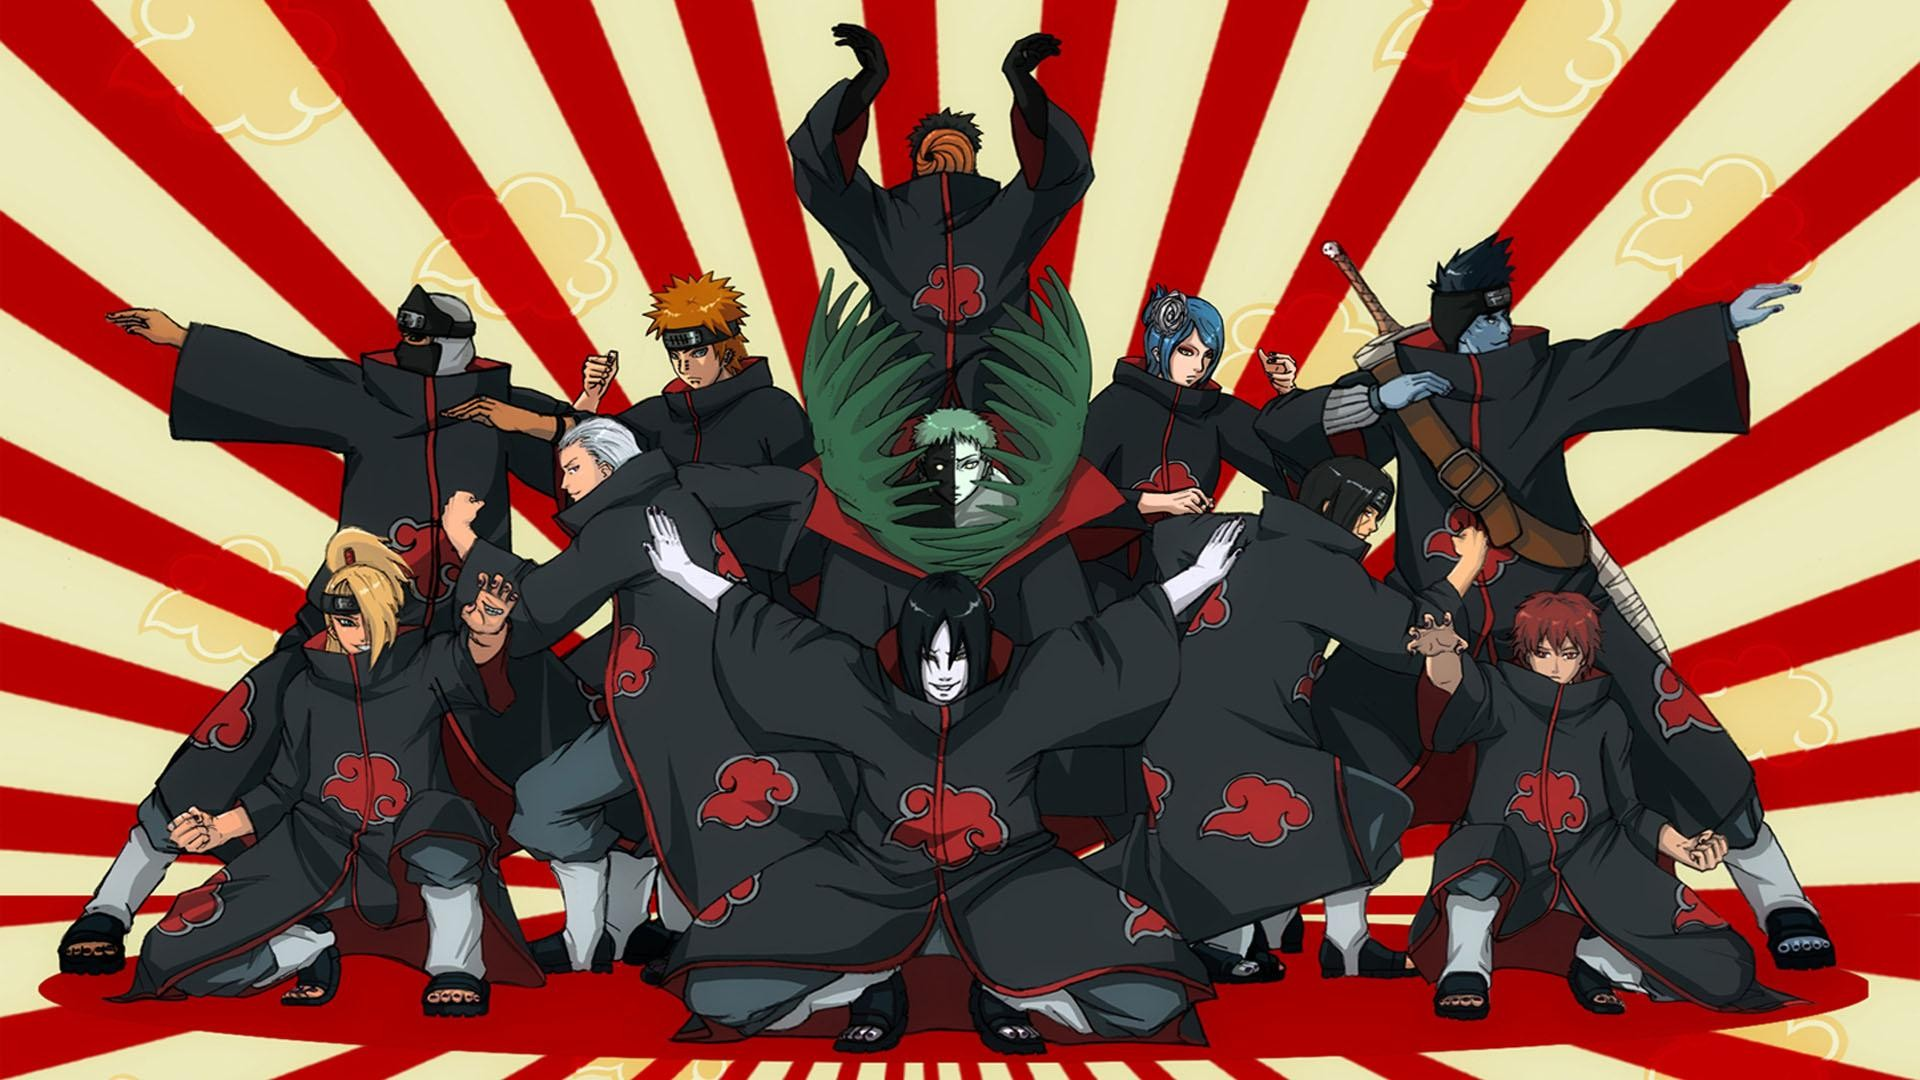 Akatsuki wallpaper ·① Download free beautiful wallpapers ...